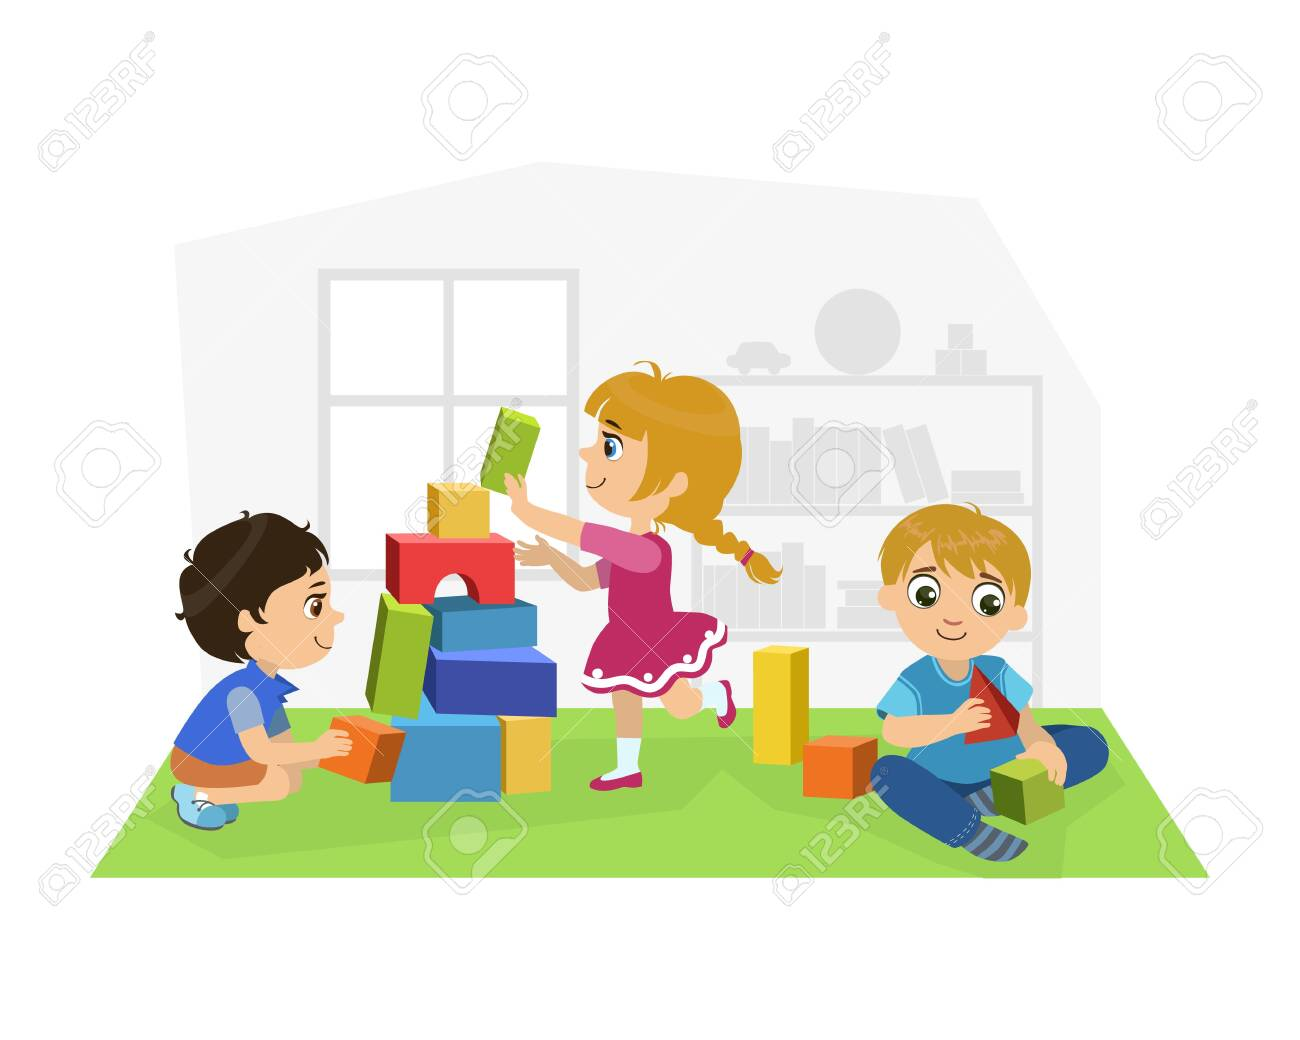 Cute Boys and Girl Sitting on Floor and Playing with Blocks in Playroom, Kids Kindergarten Activities Vector Illustration - 127135899